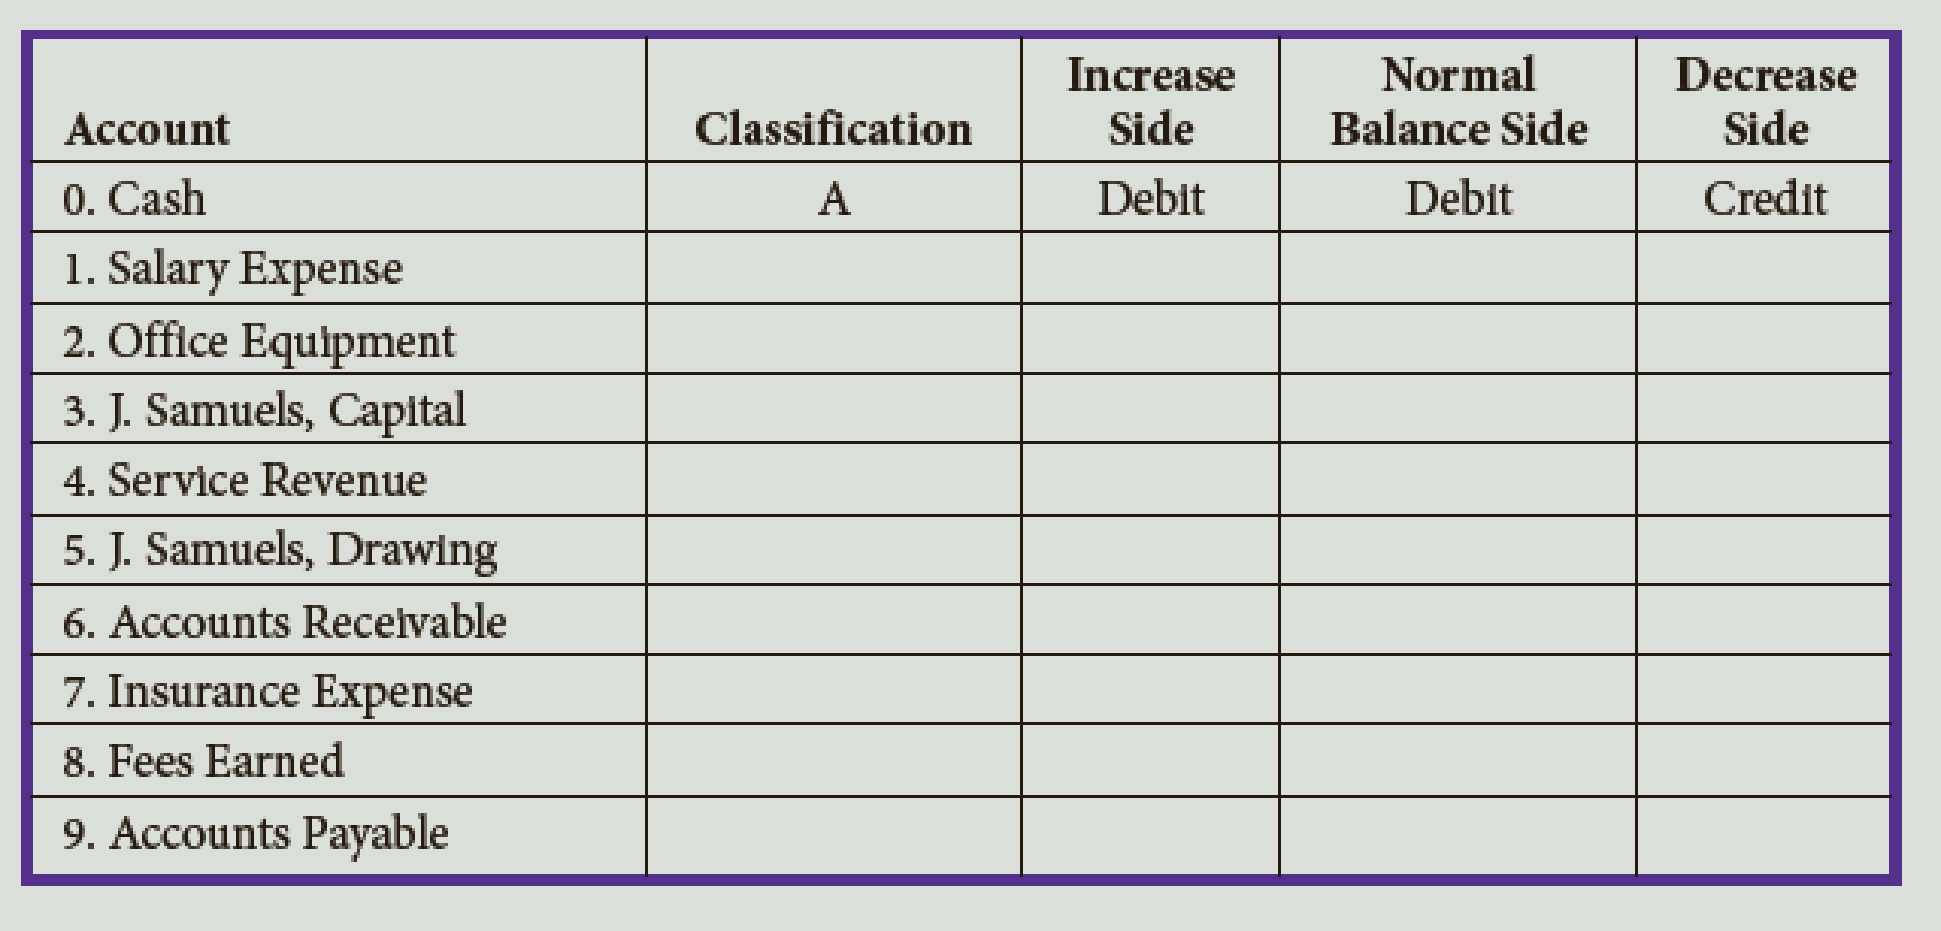 Chapter 2, Problem 2E, List the classification of each of the following accounts as A (asset), L (liability), OE (owners